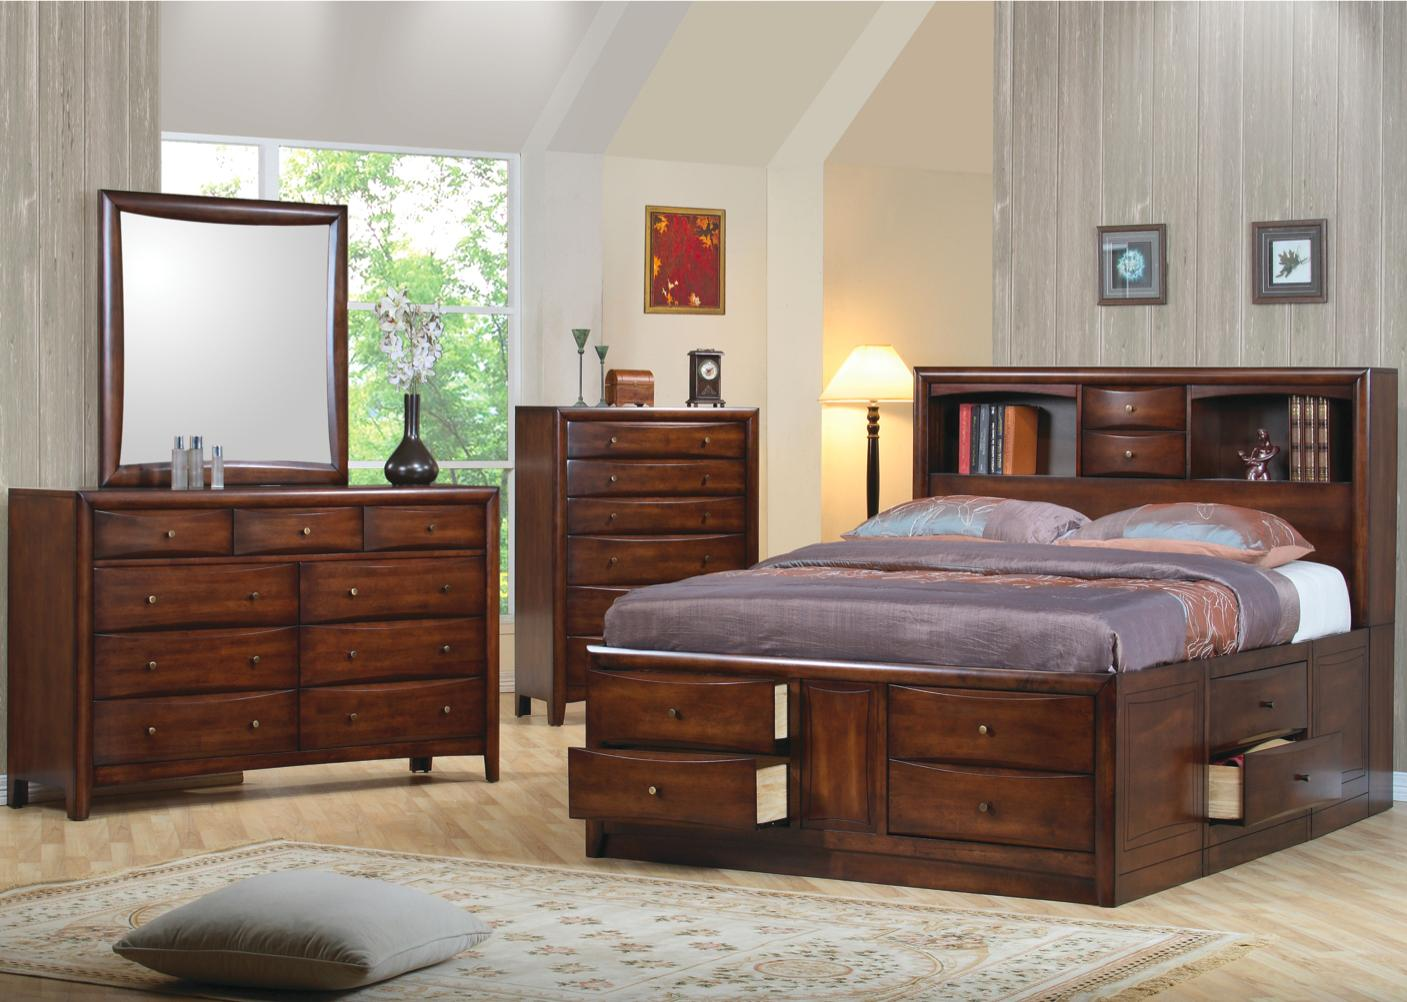 King Size Bookcase Headboard Picture